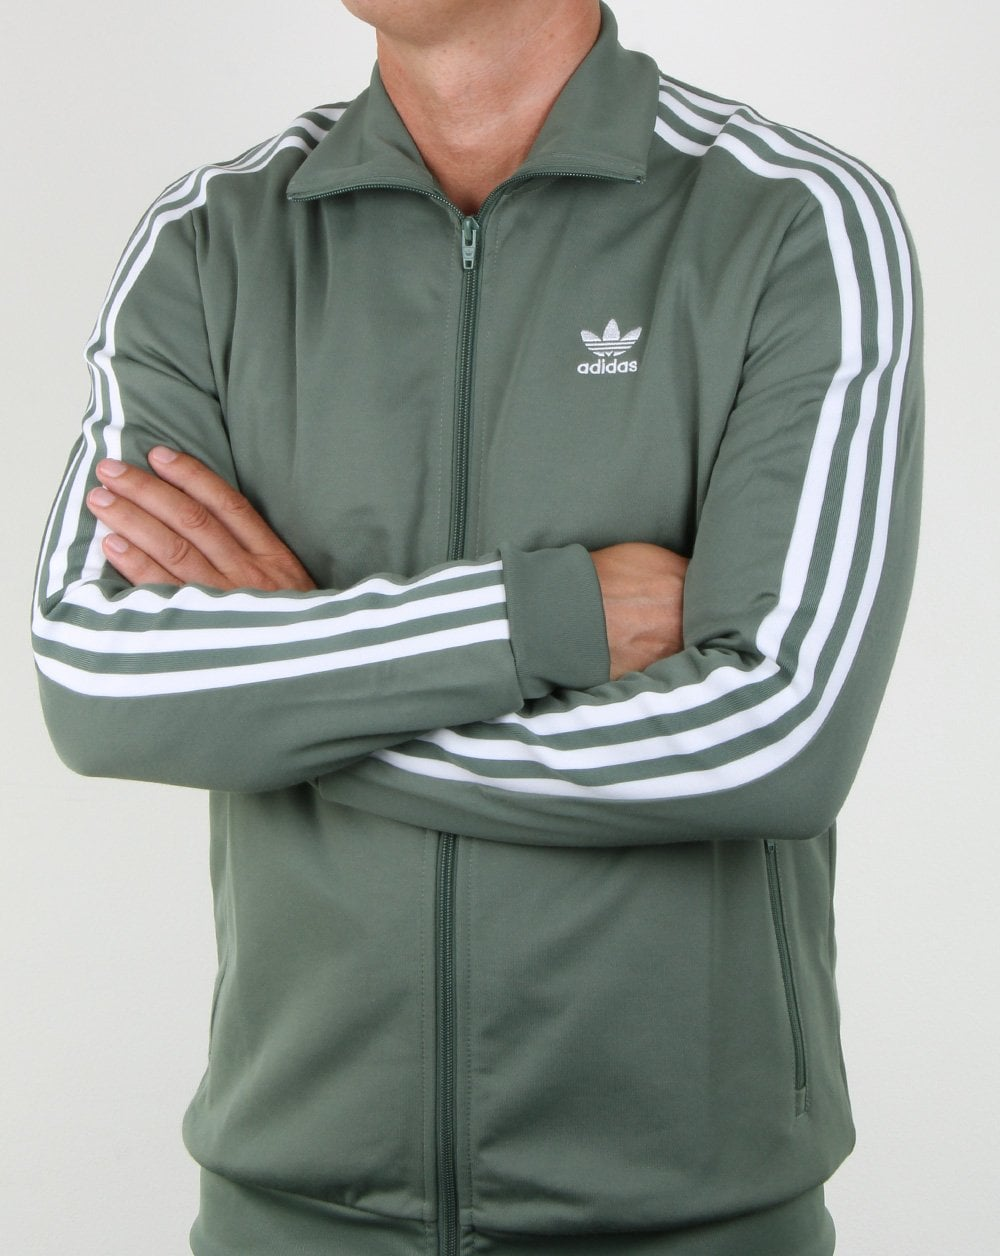 adidas Beckenbauer track top trace green